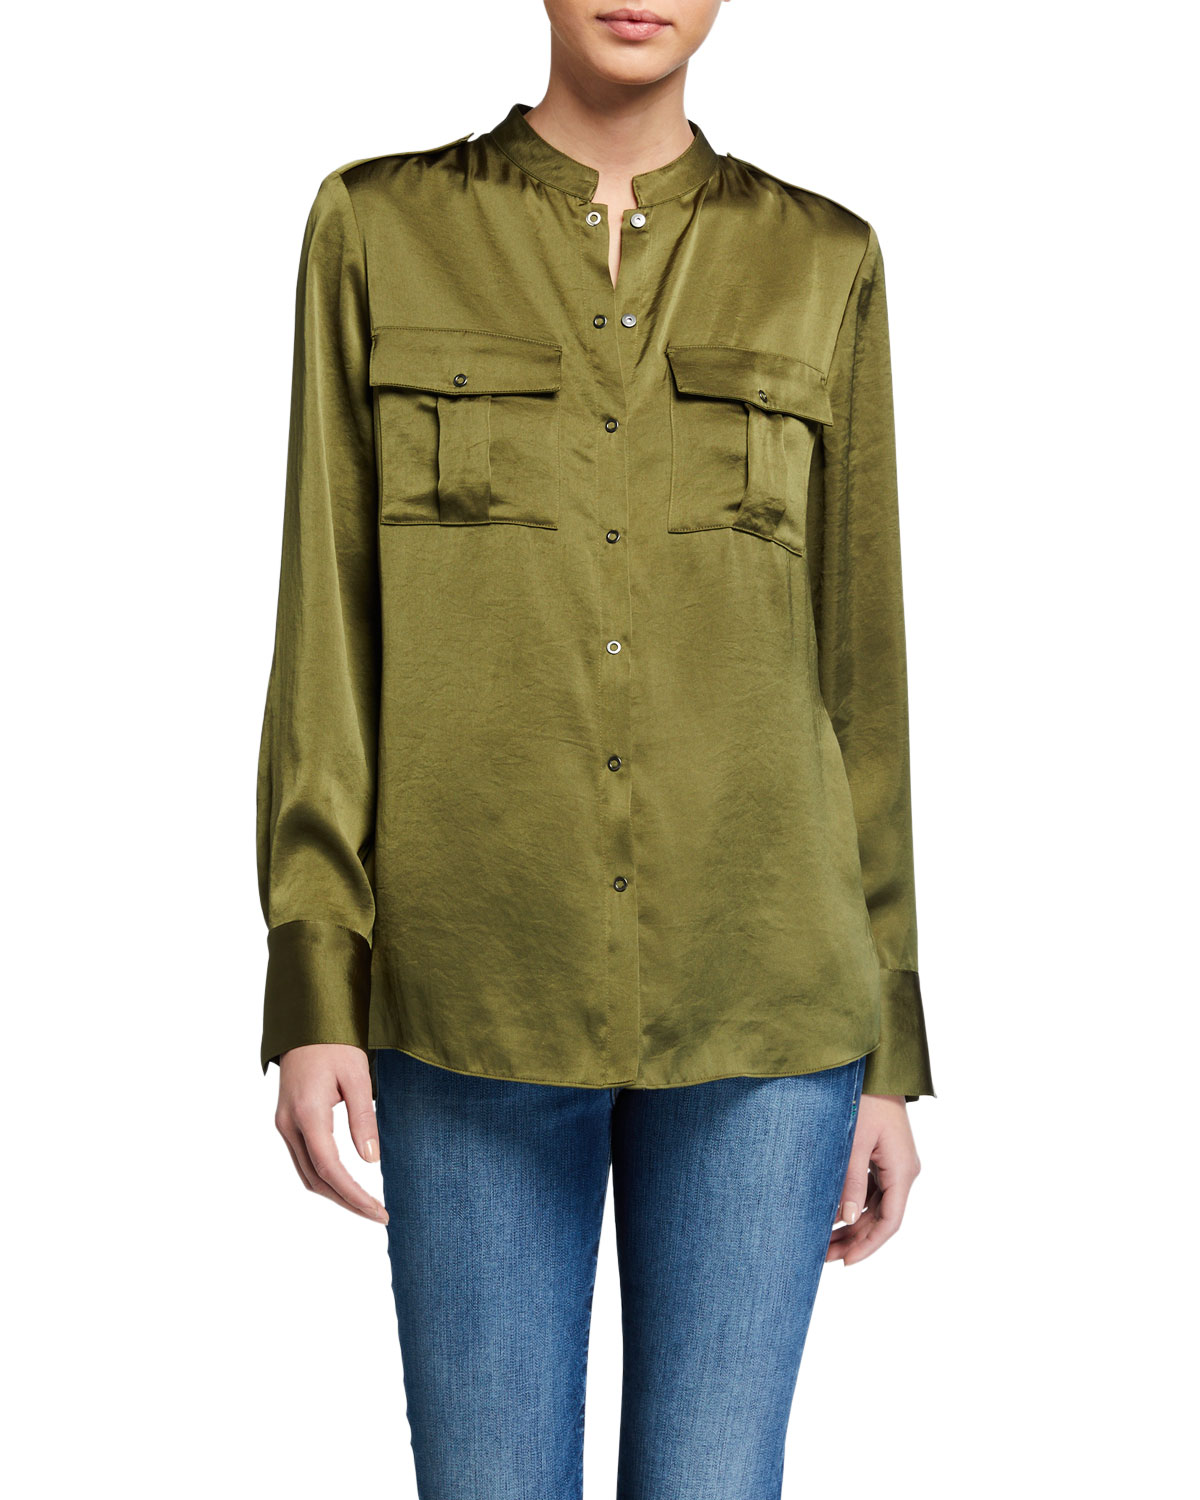 Elie Tahari Emmett Satin Button-Down Shirt